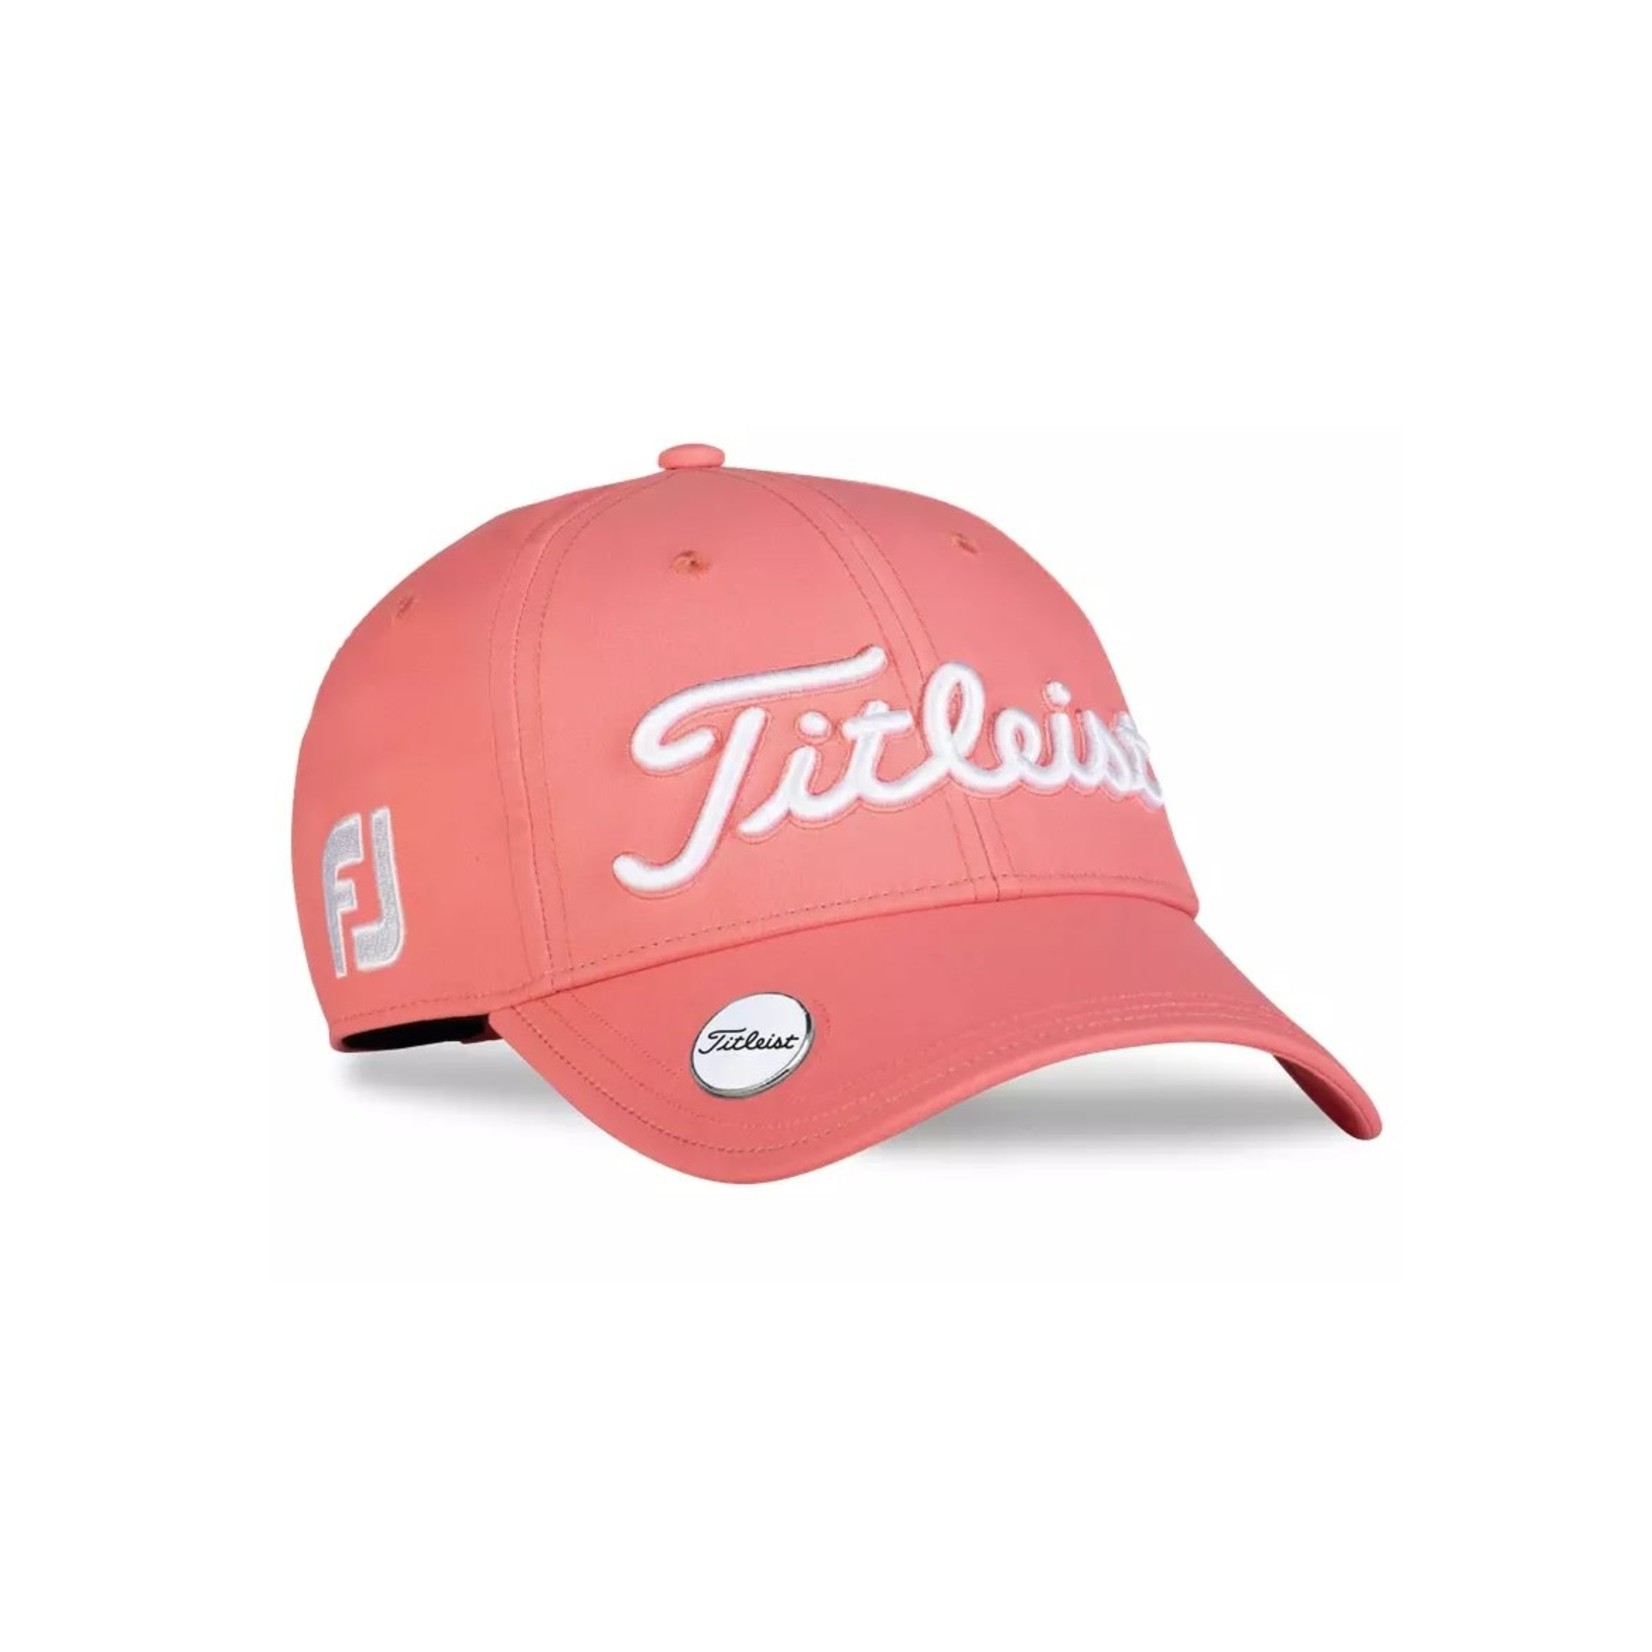 Titleist Titleist Tour Performance Pastel Pink CAP